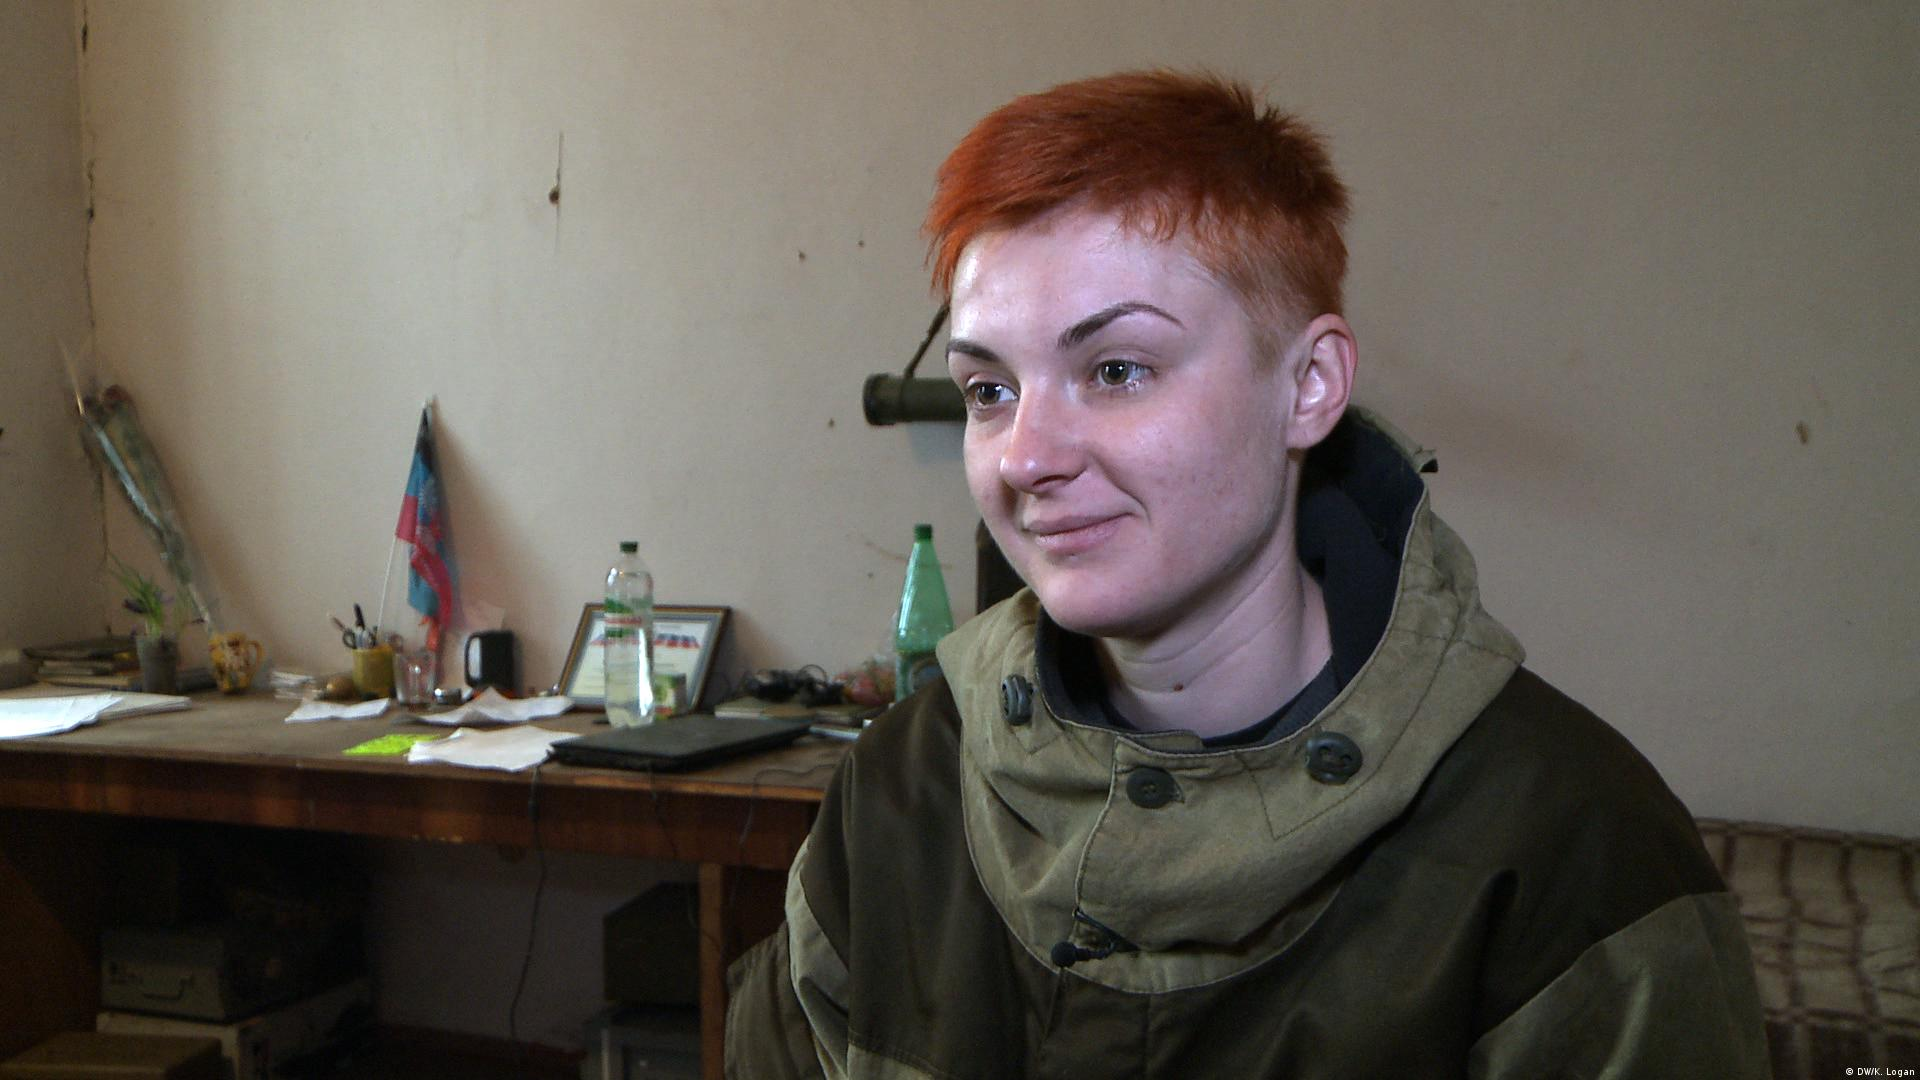 Ukraine separatist Nut, with red, close-cropped hair, smiles off-camera